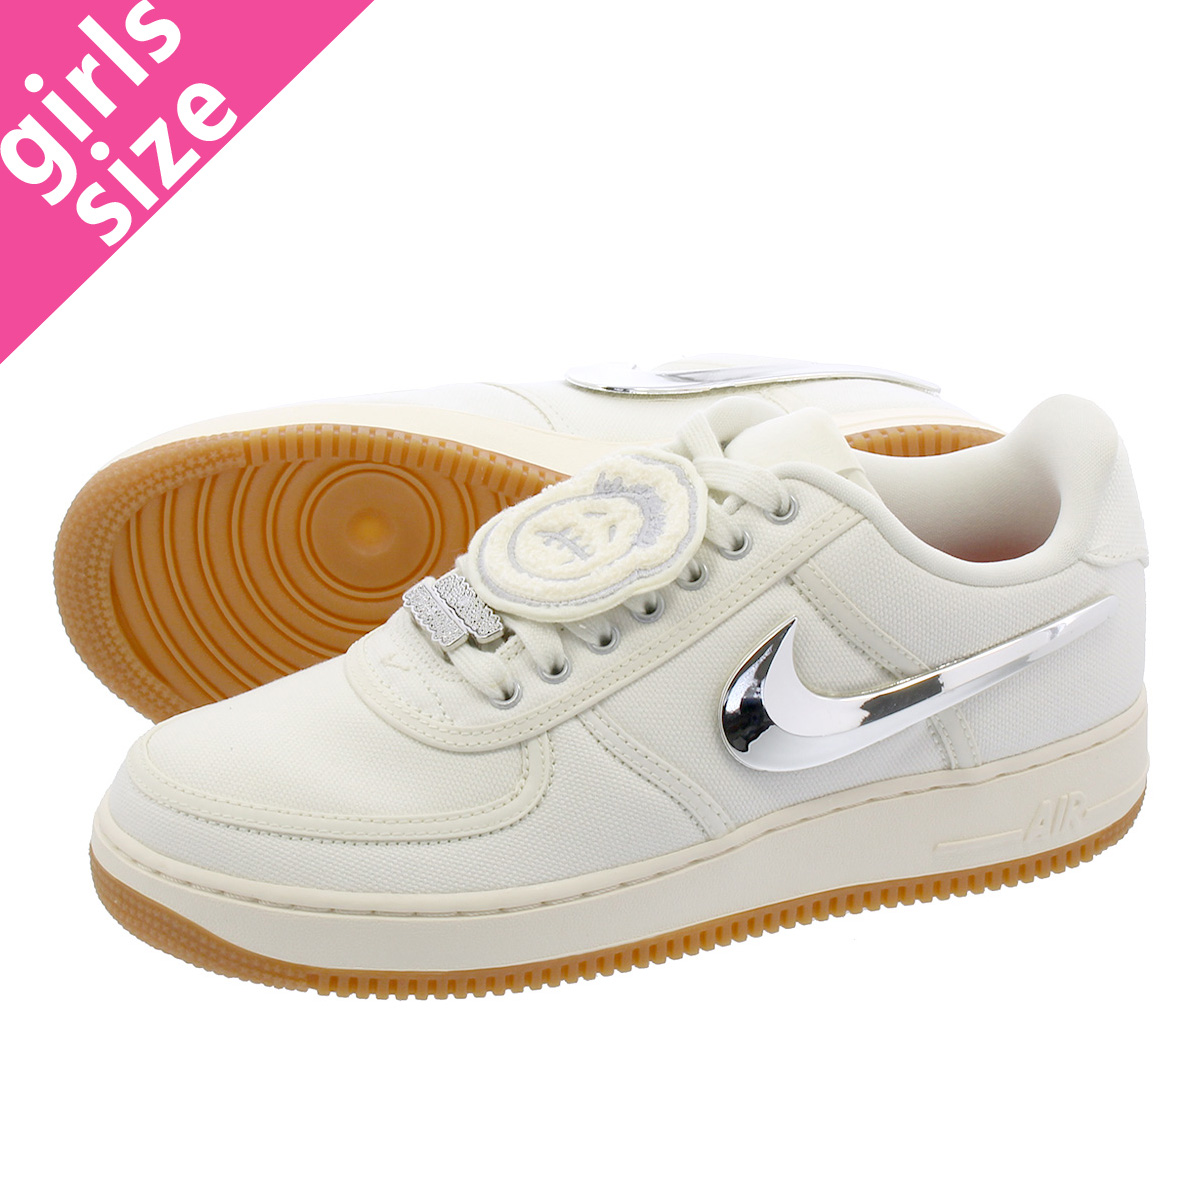 finest selection 44b63 a798b NIKE AIR FORCE 1 TRAVIS SCOTT Nike air force 1 Travis Scot SAIL aq4211-101